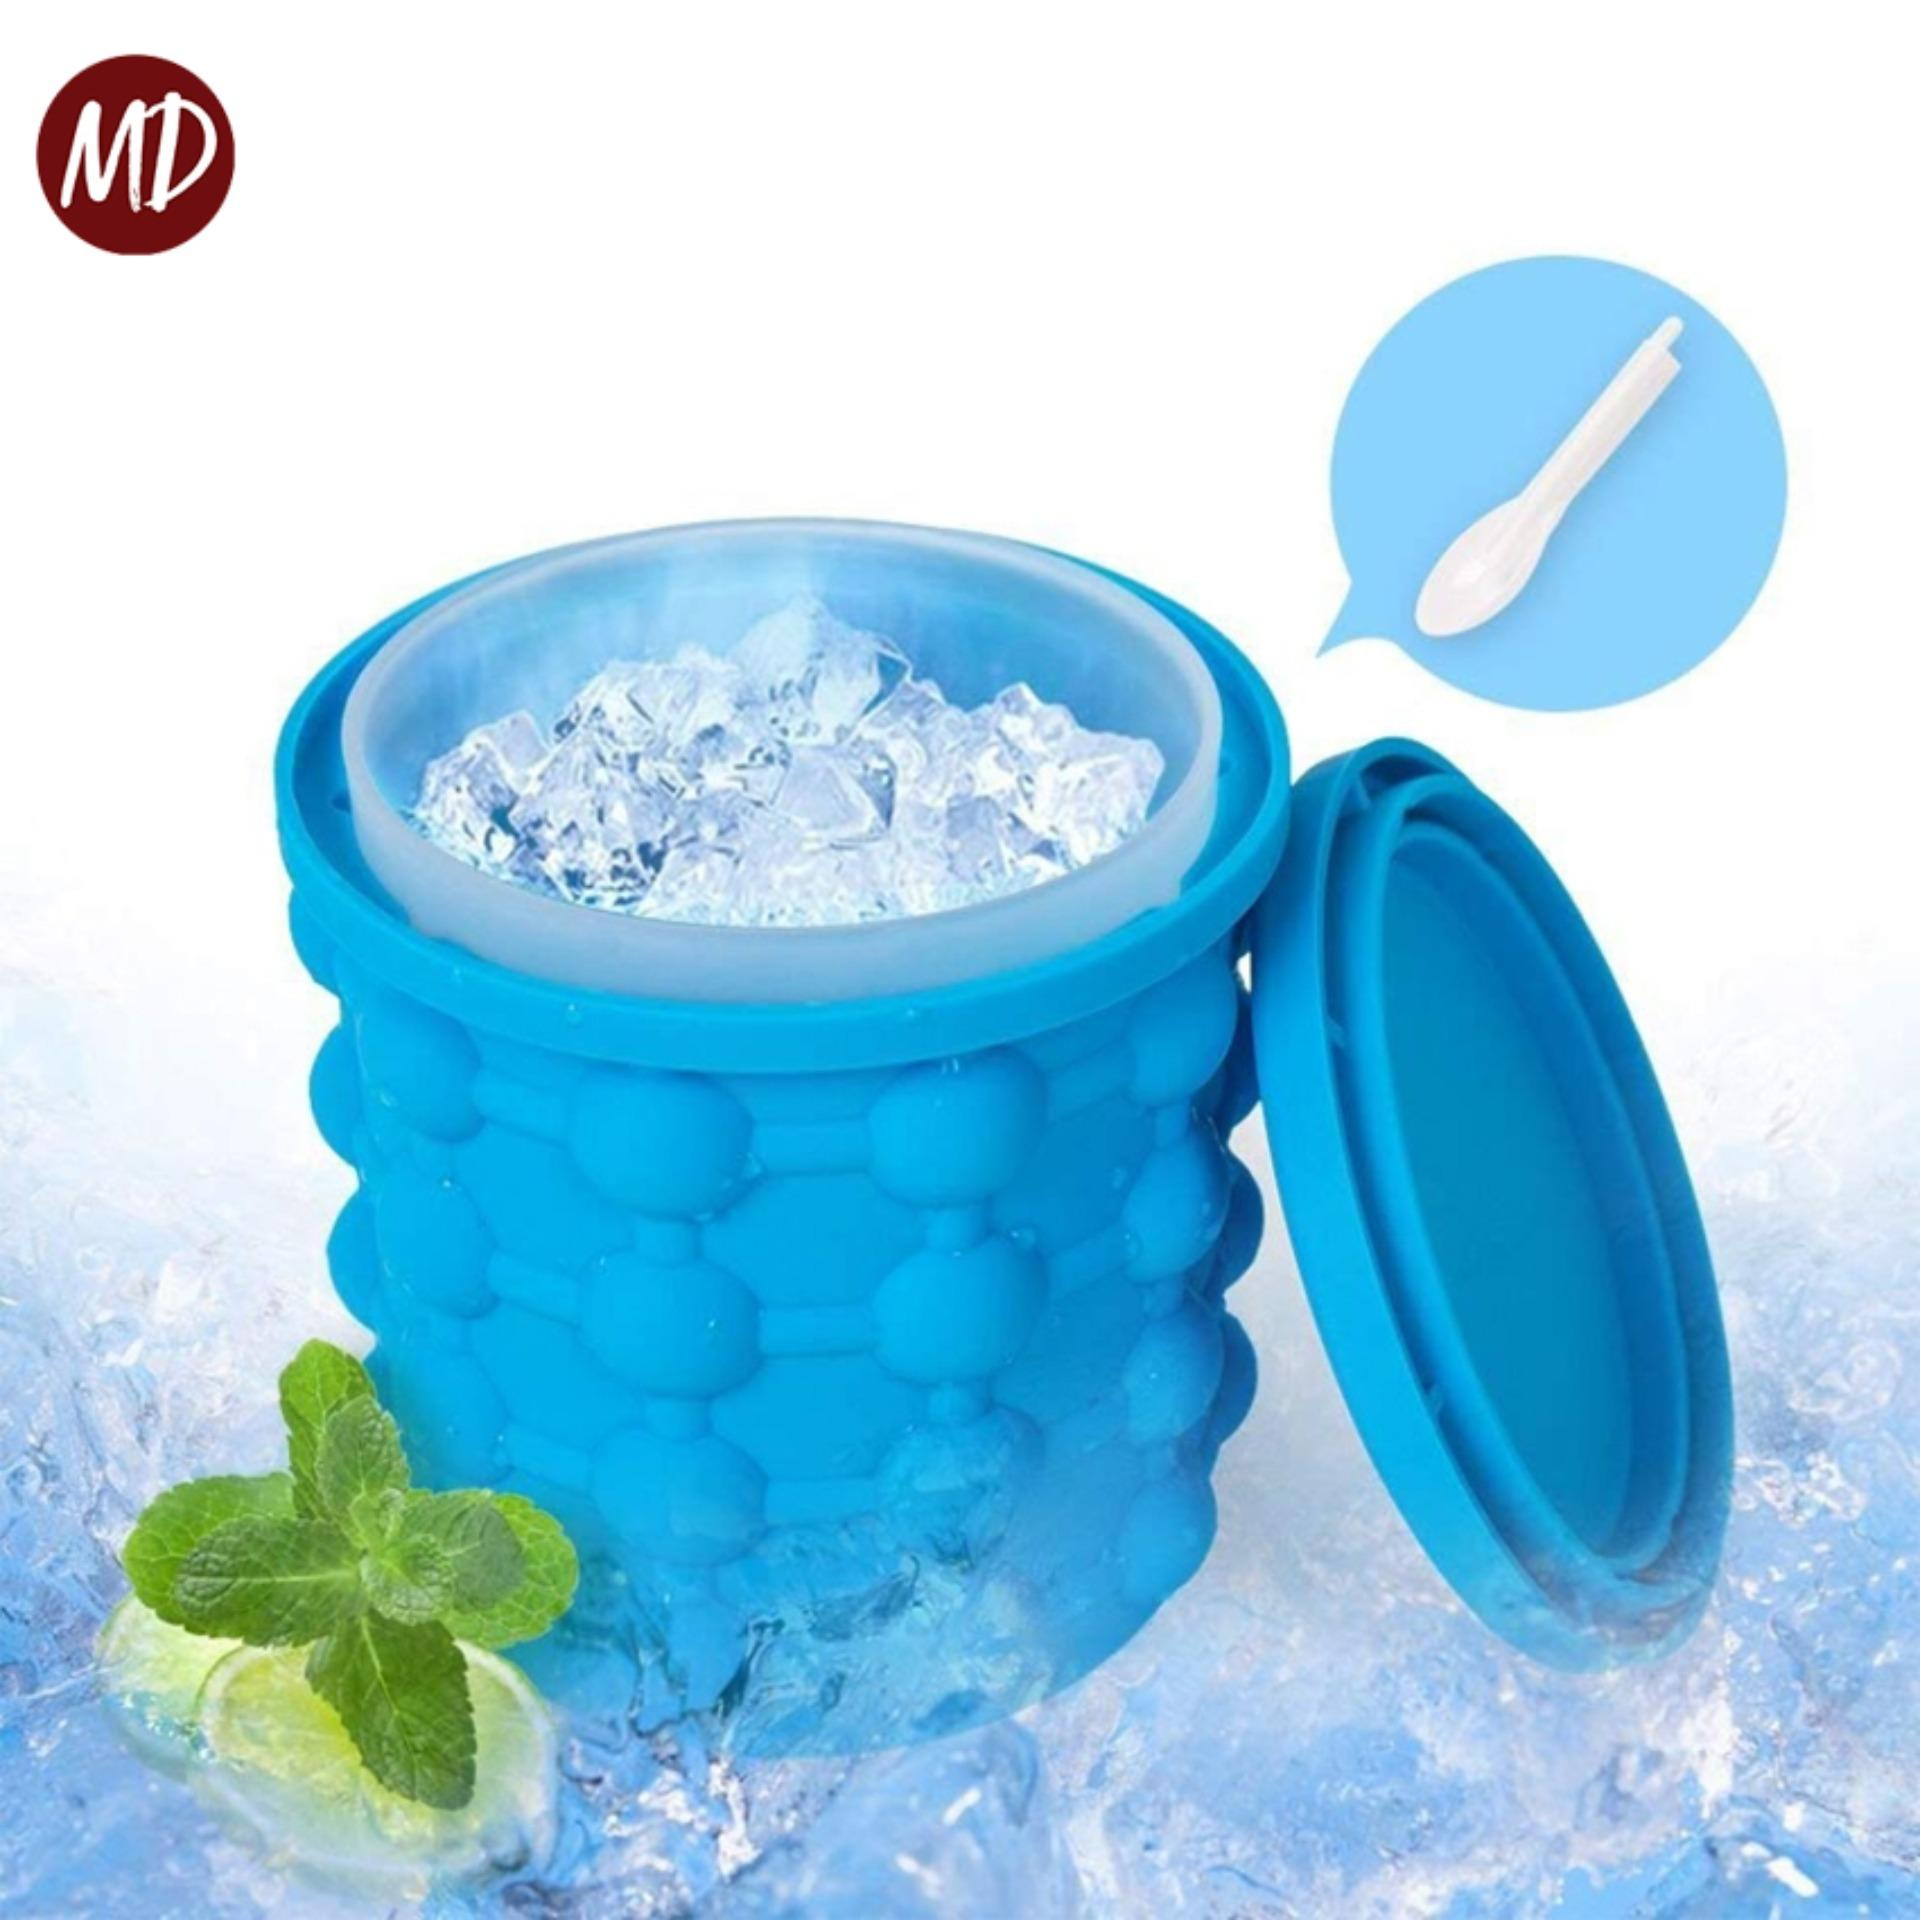 Md Silicone Ice Cube Maker Genie The Revolutionary Space Saving Ice Cube Maker By Mega Deal.